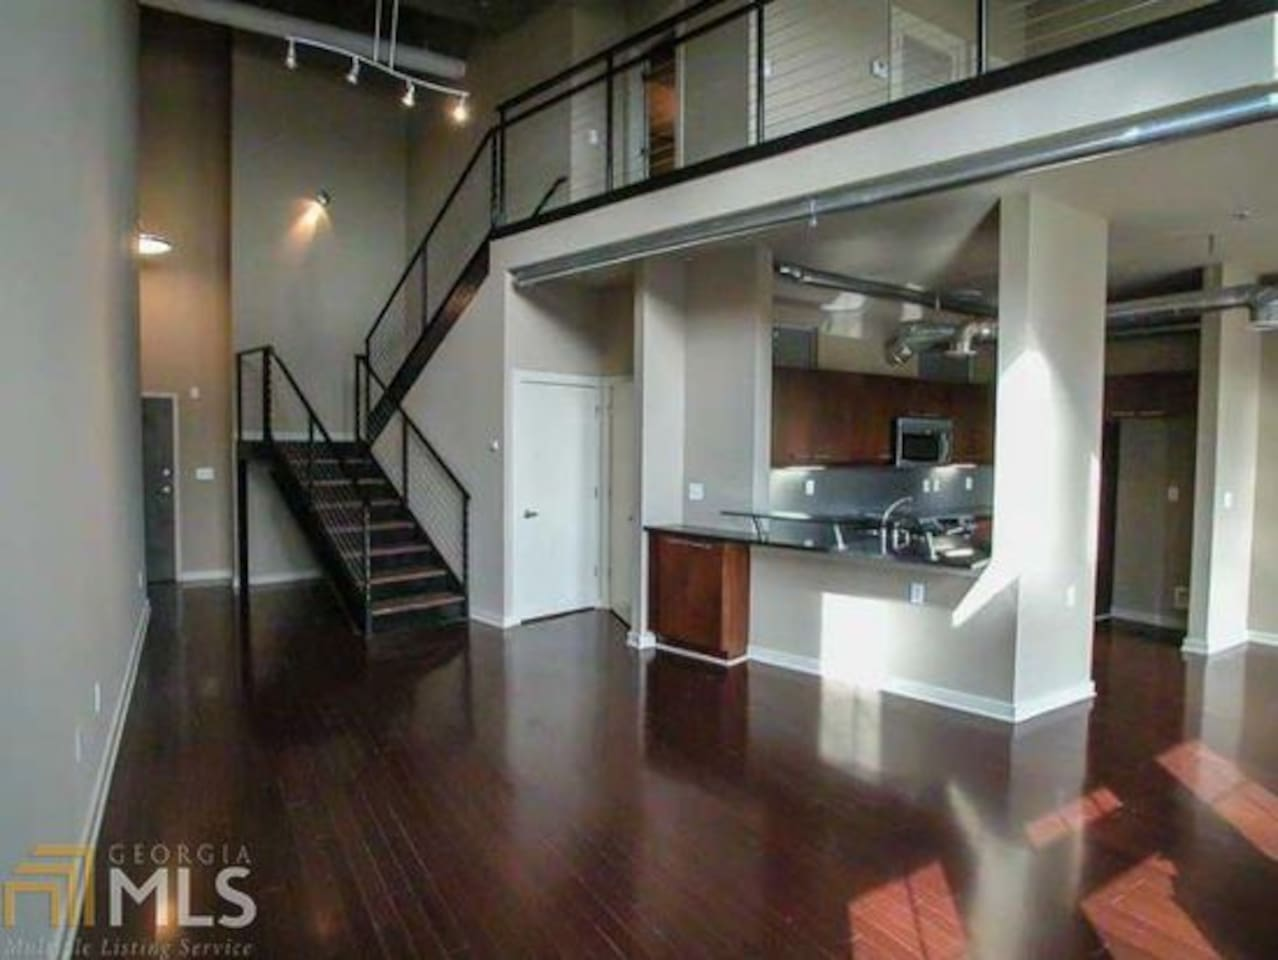 Kitchen and Stairs to Upstairs (upstairs off limits)